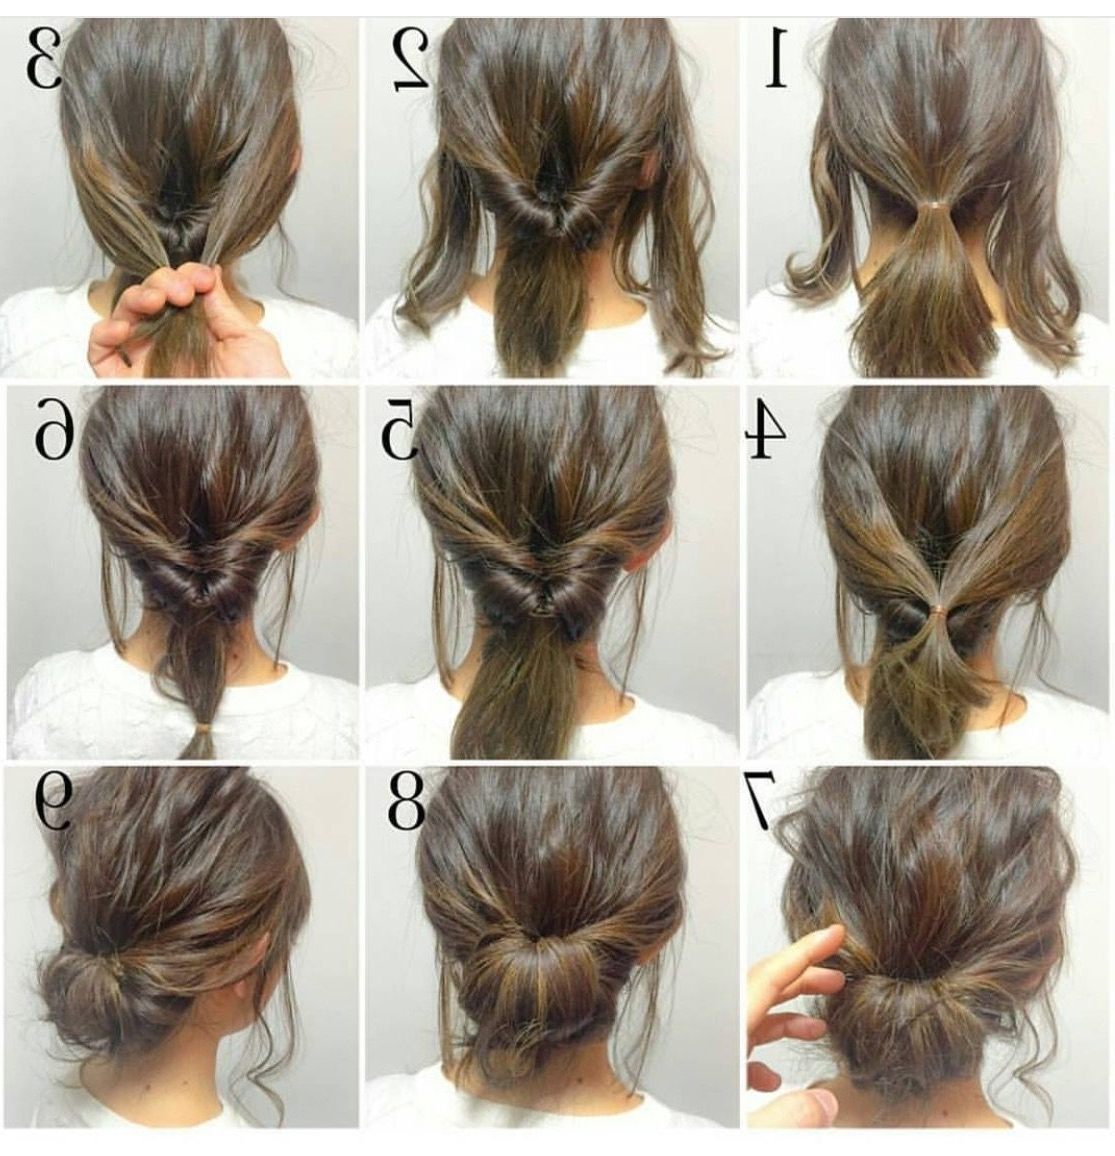 4 Messy Updos For Long Hair | Hairz | Pinterest | Updos, Hair Style Intended For Hair Updo Hairstyles For Long Hair (View 3 of 15)